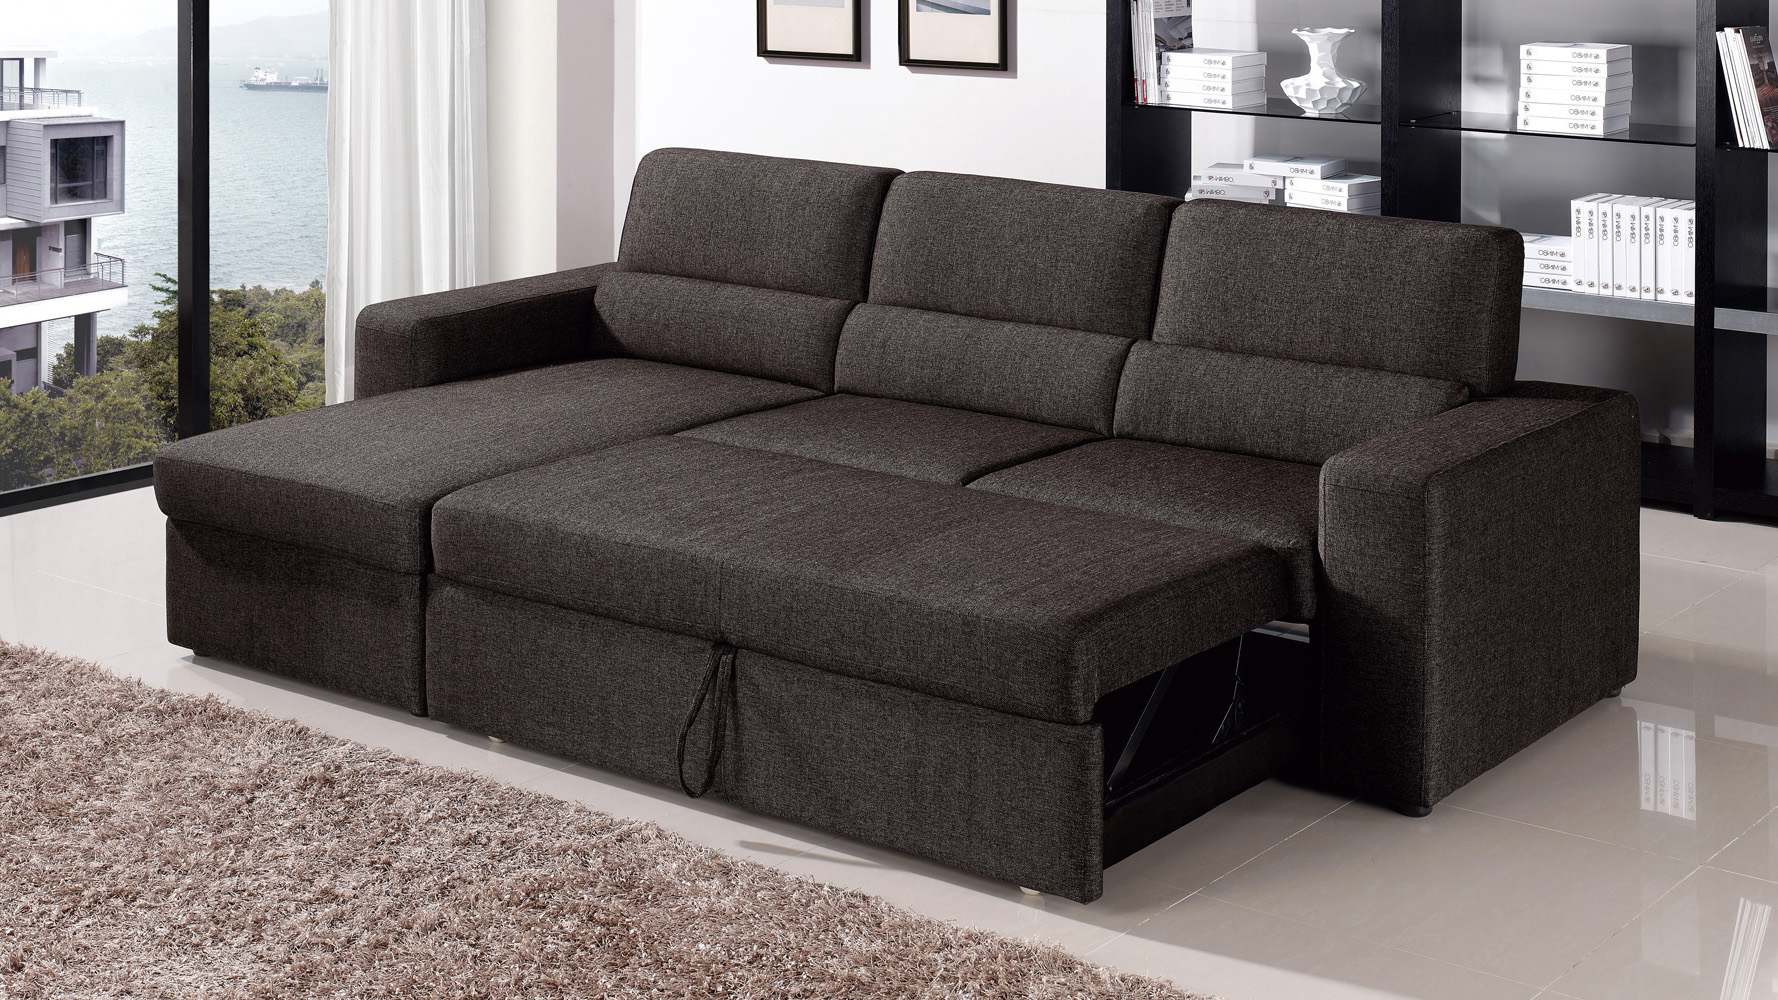 black brown clubber sleeper sectional sofa zuri furniture. Black Bedroom Furniture Sets. Home Design Ideas